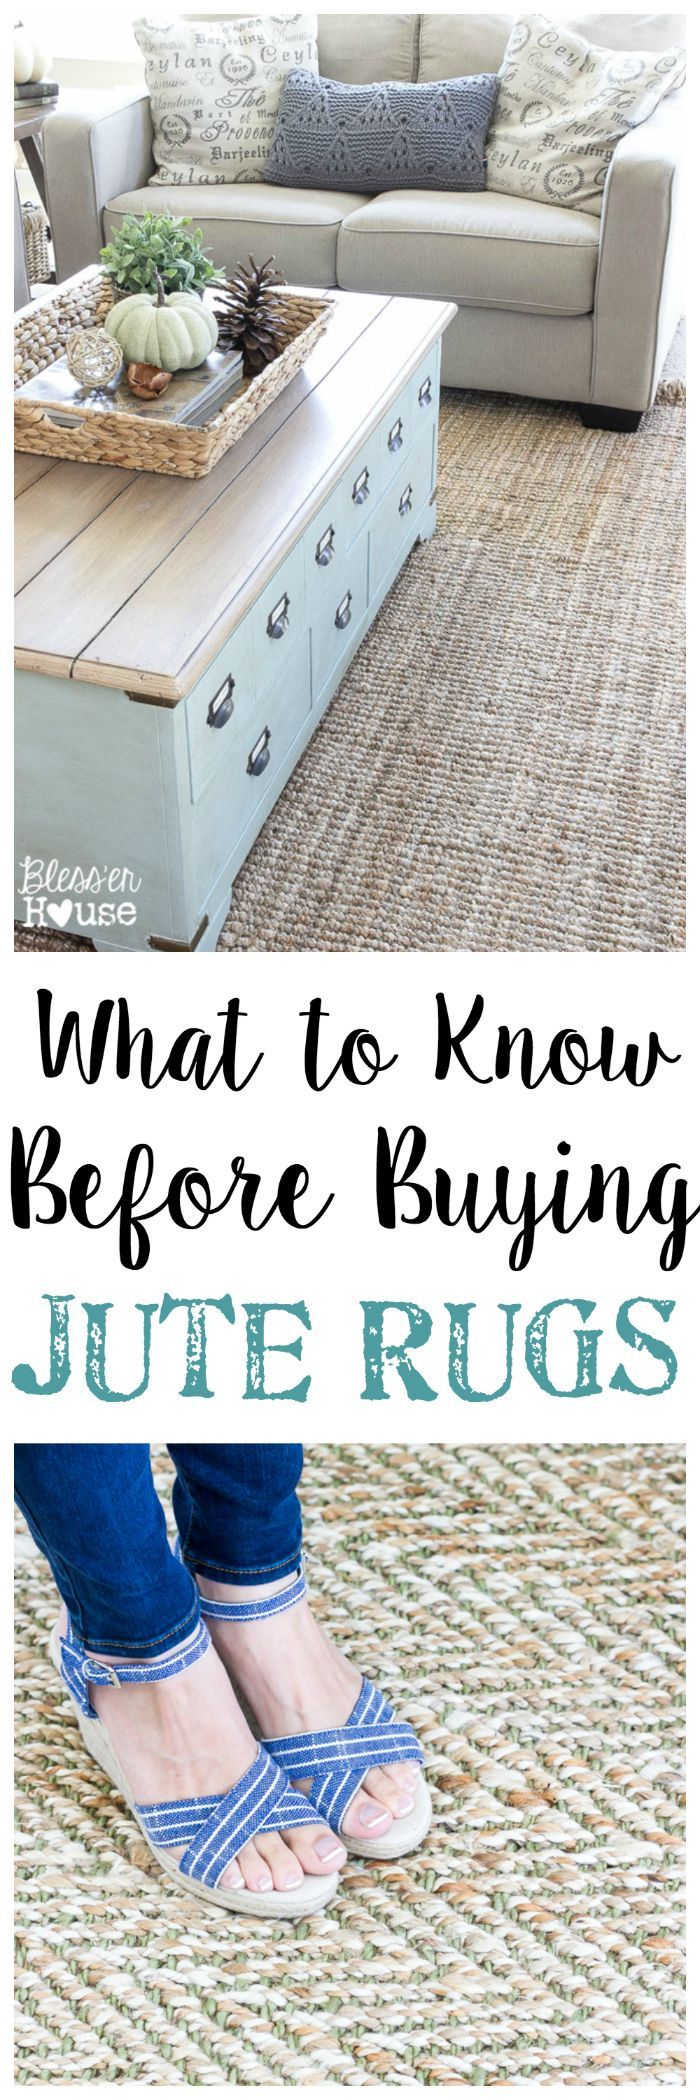 Best place to buy an area rug - What To Know Before Buying Jute Rugs